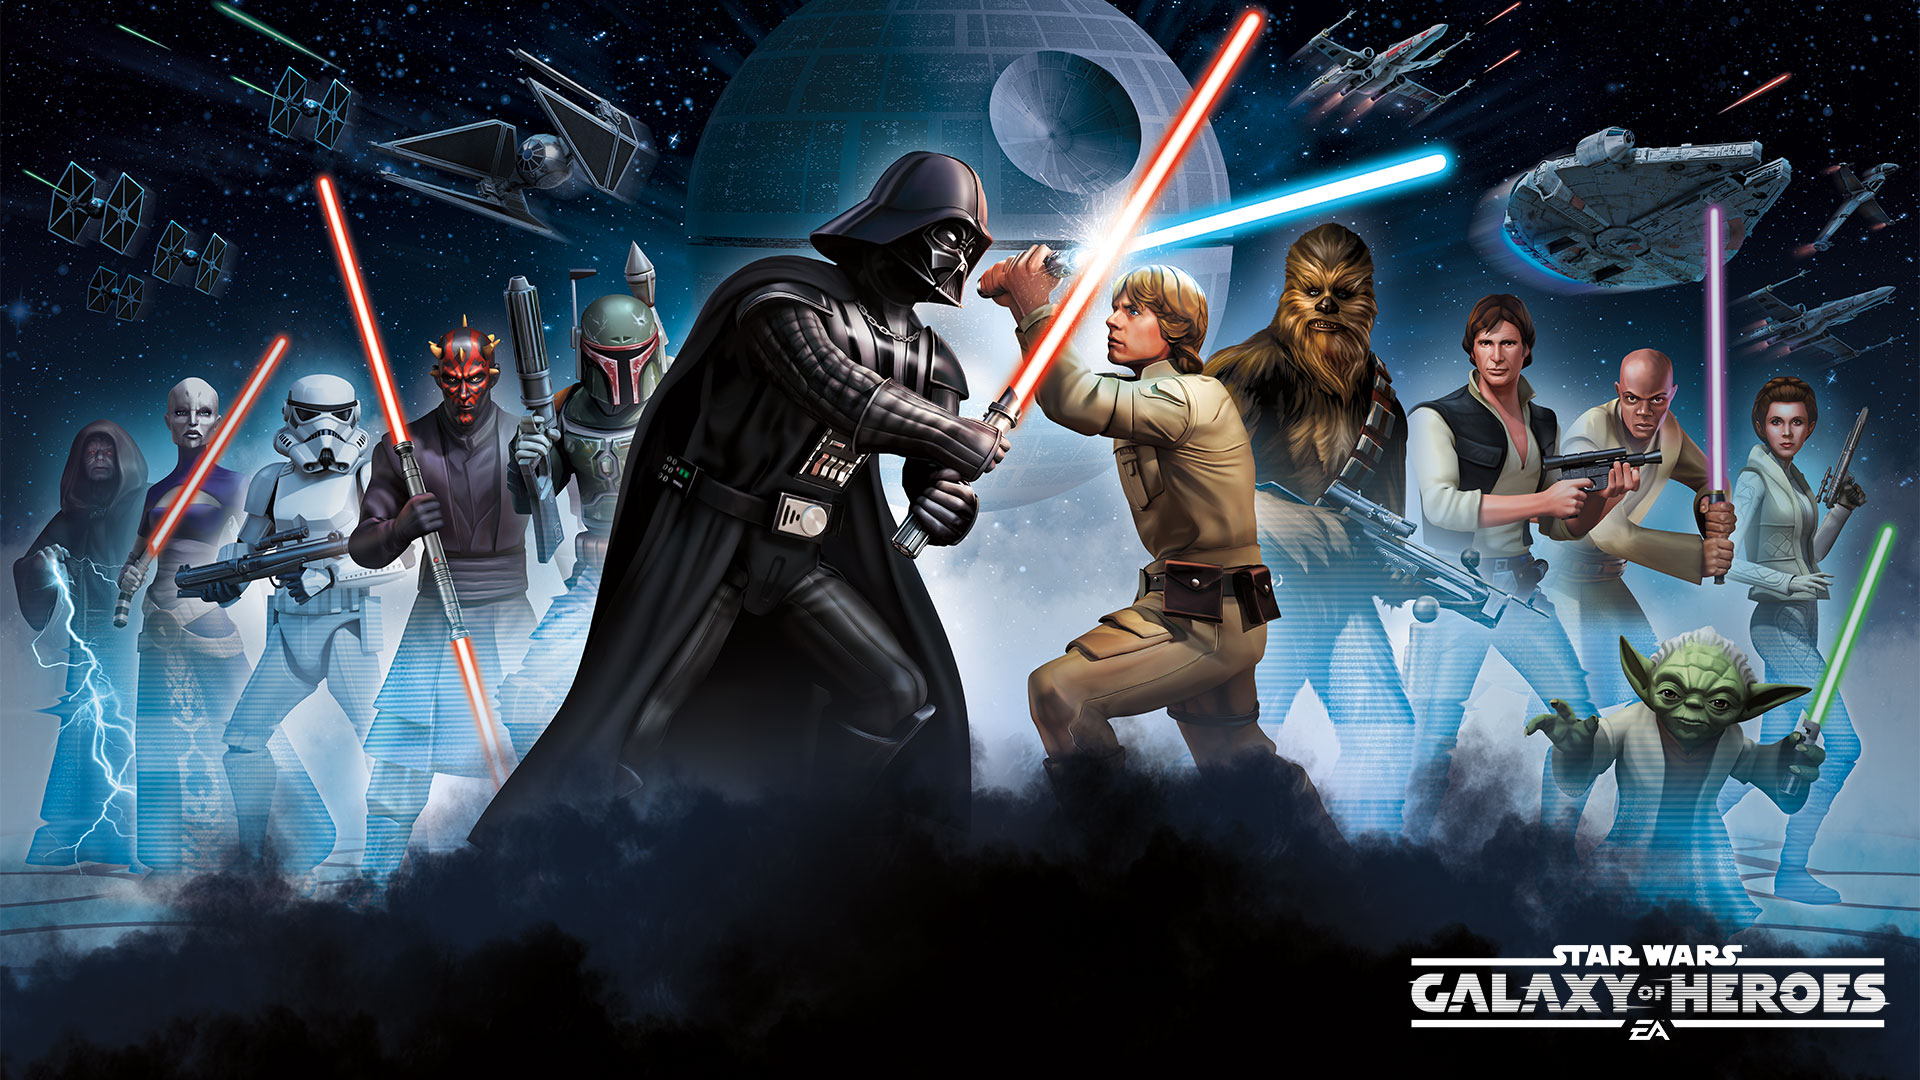 Free Download Star Wars Galaxy Of Heroes Hd Wallpapers And Background Images 1920x1080 For Your Desktop Mobile Tablet Explore 27 Star Wars Galaxies Background Star Wars Galaxies Wallpaper Star